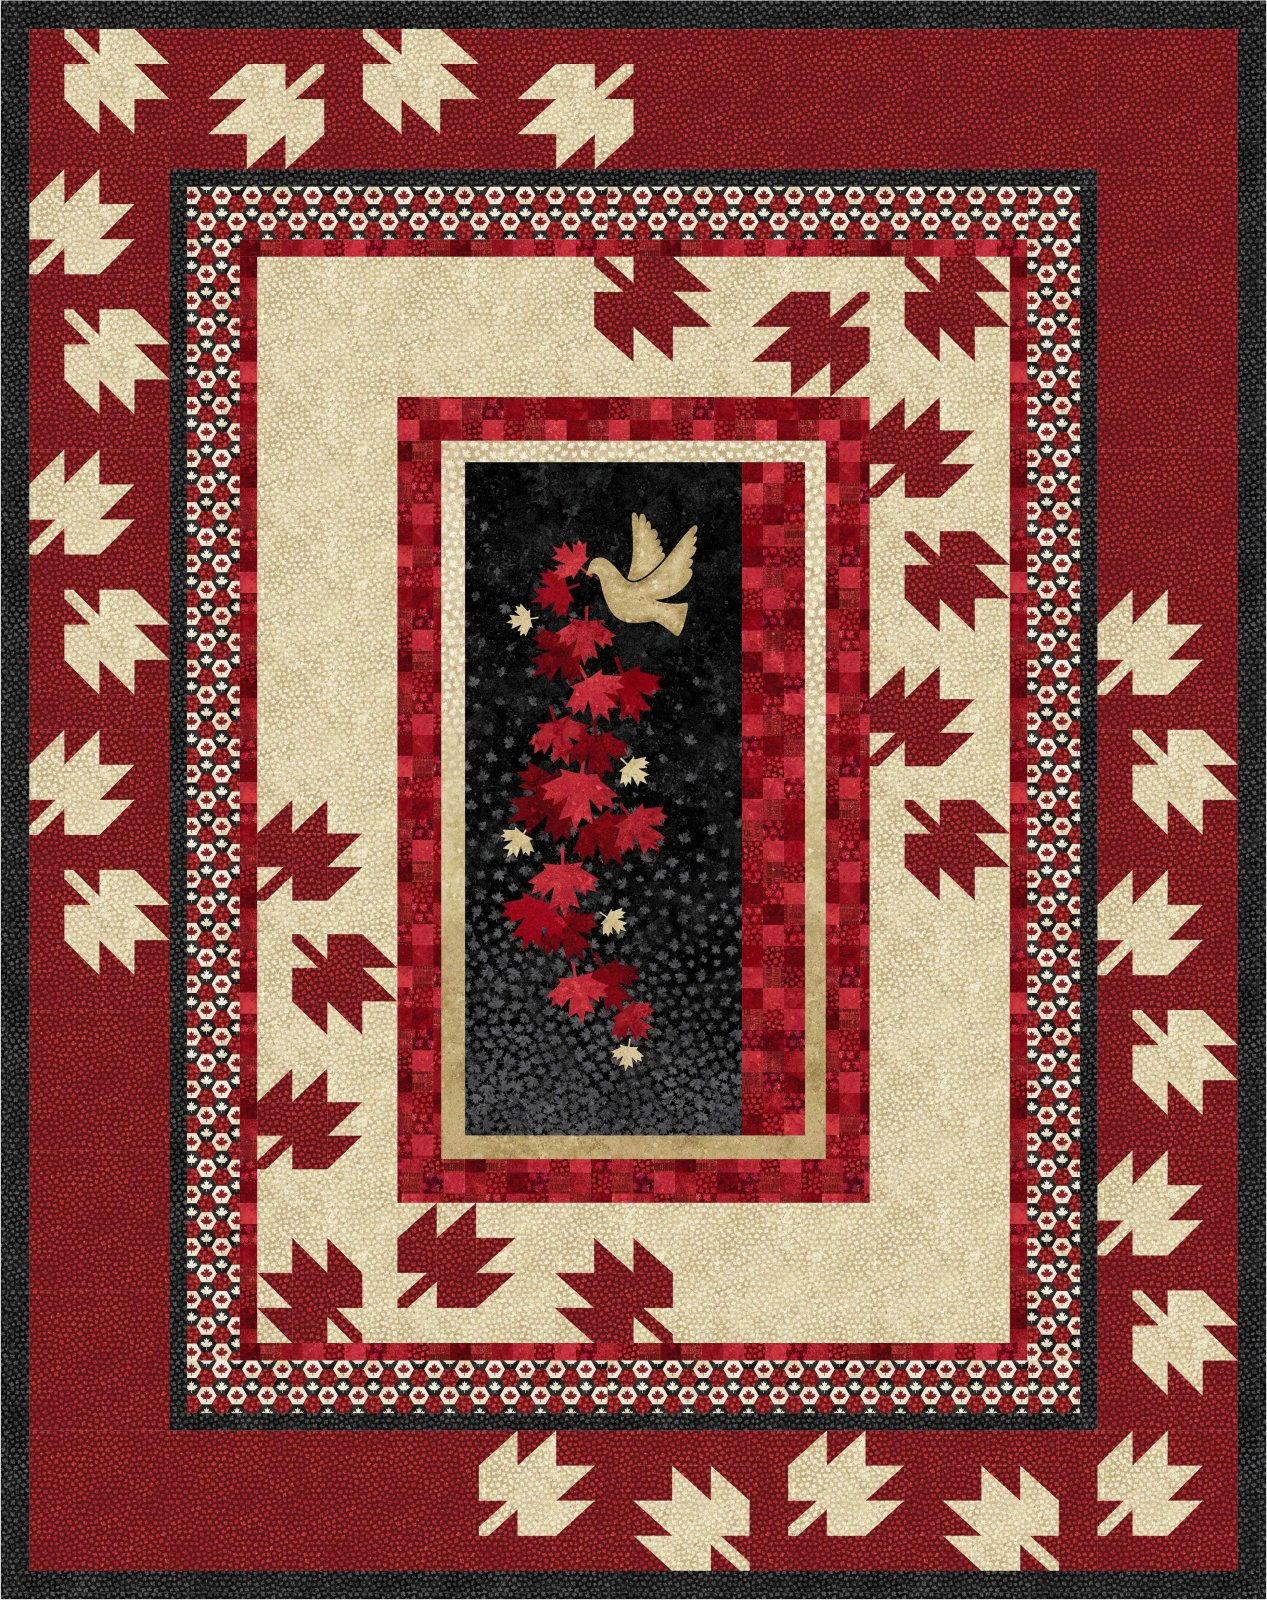 Scattered Leaves quilt kit - twin/throw size